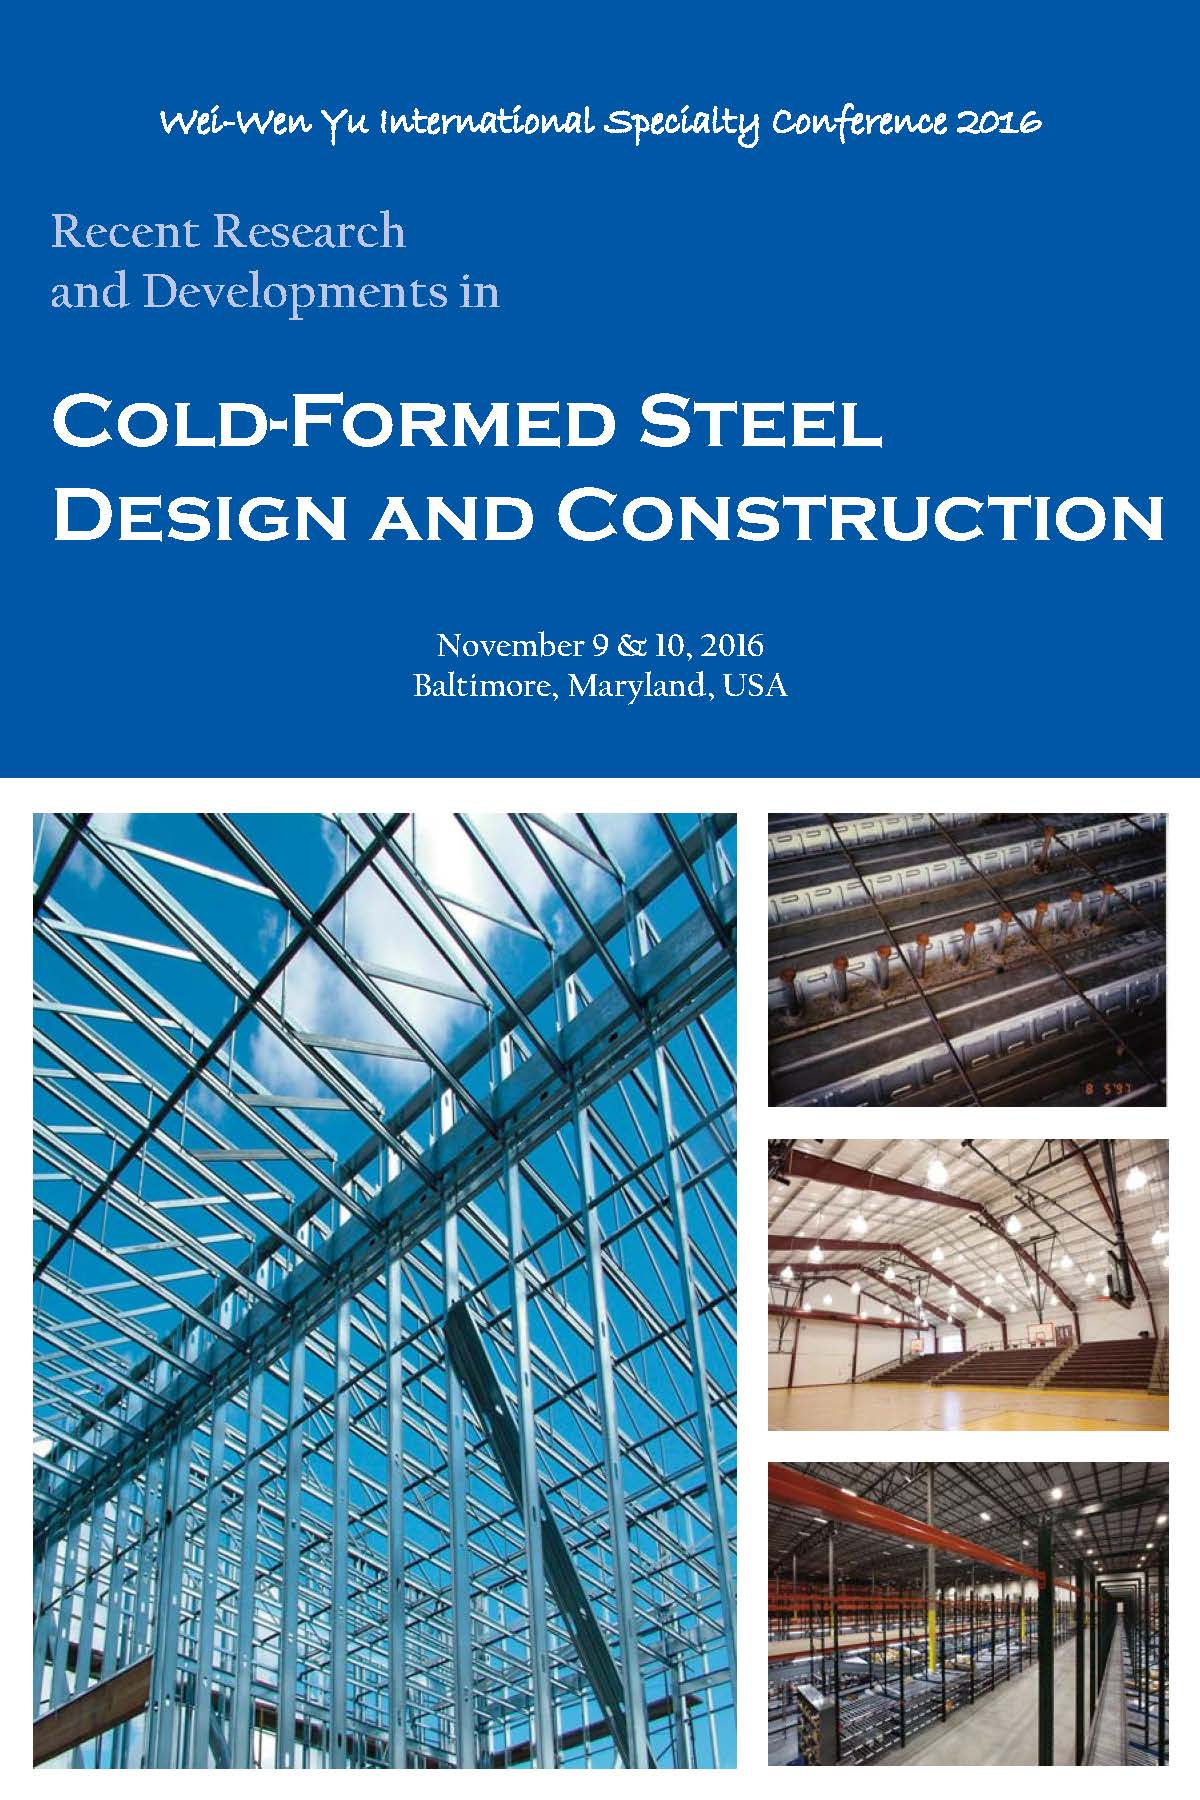 Wei-Wen Yu International Specialty Conference on Cold-Formed Steel Structures 2016